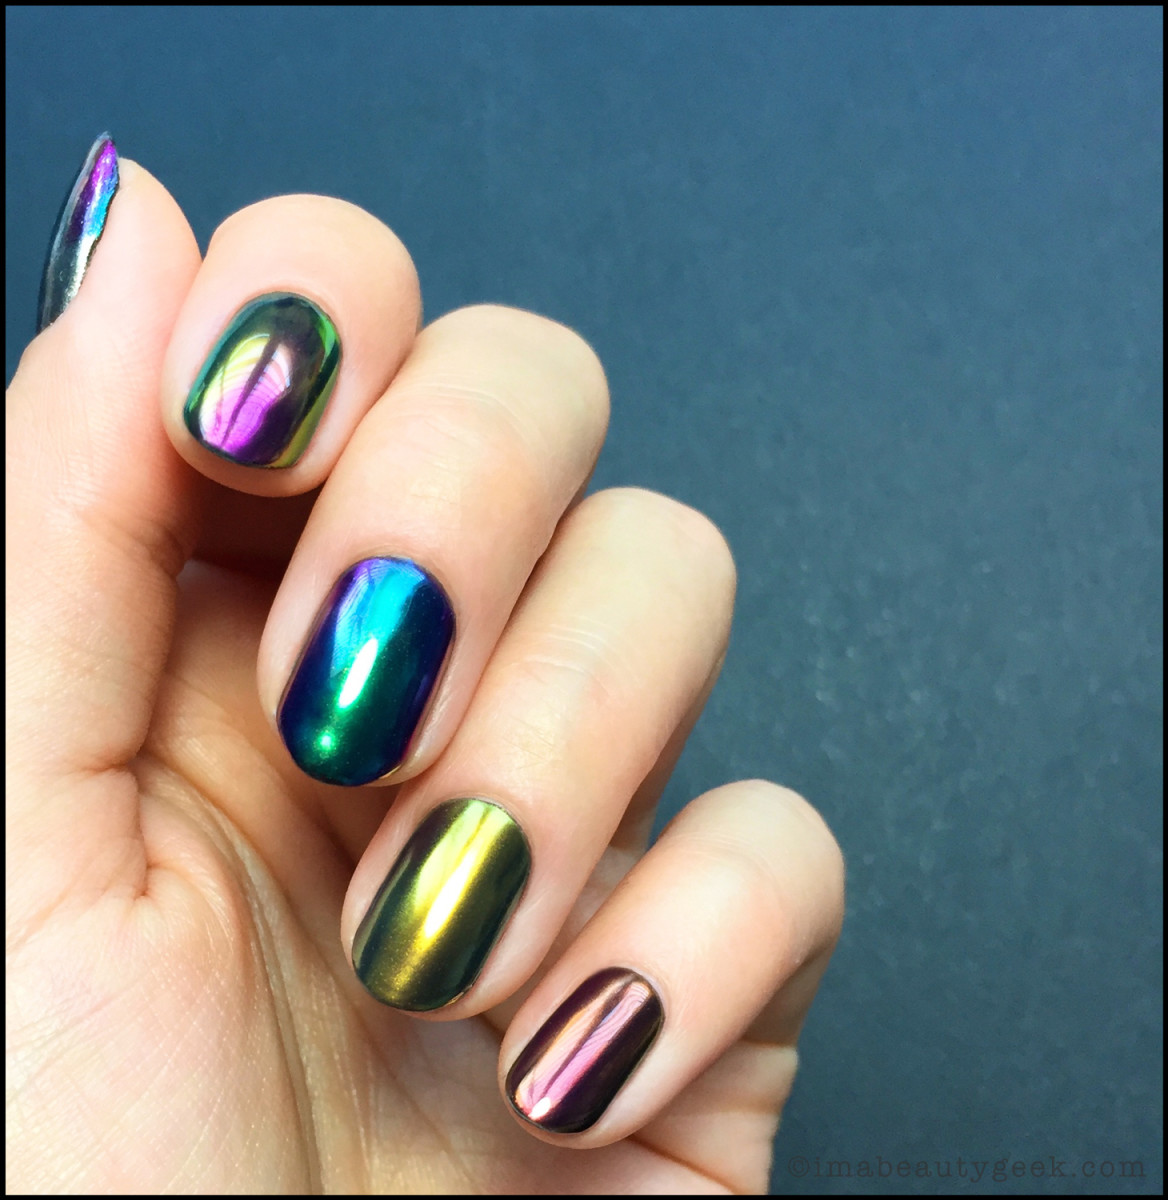 Nail Polish Tips: Best Chrome Nail Polish